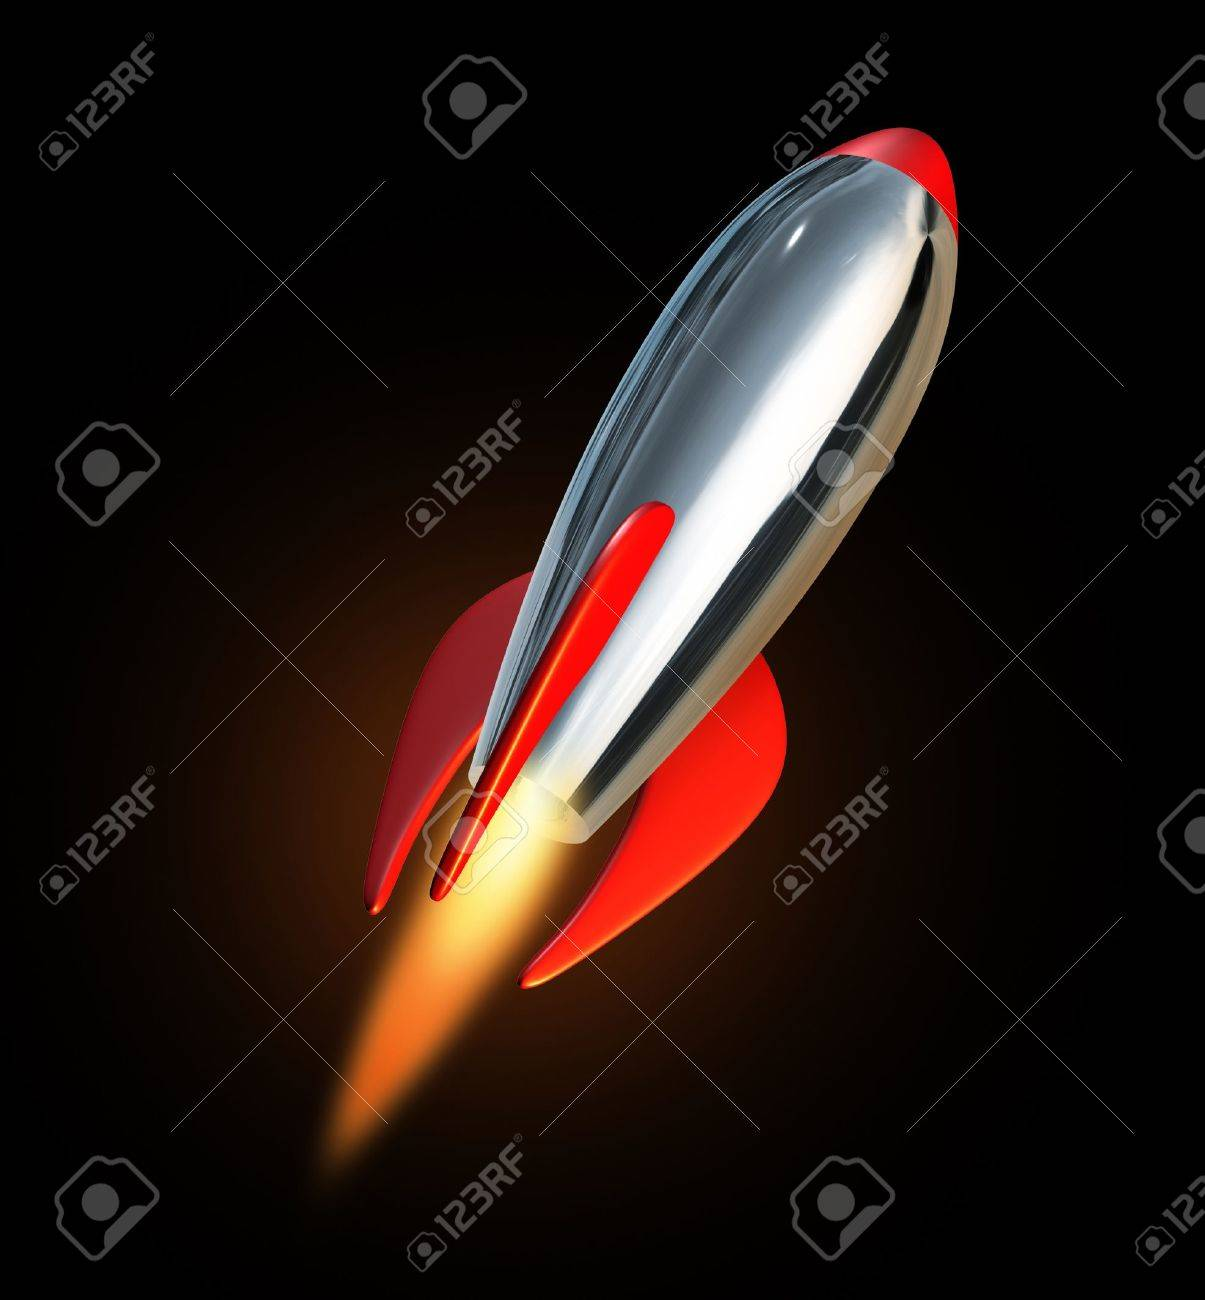 Blast off into space using a metal missile rocket spacecraft propelling into a black background representing new beginnings and charging towards the future ahead. Stock Photo - 10576938